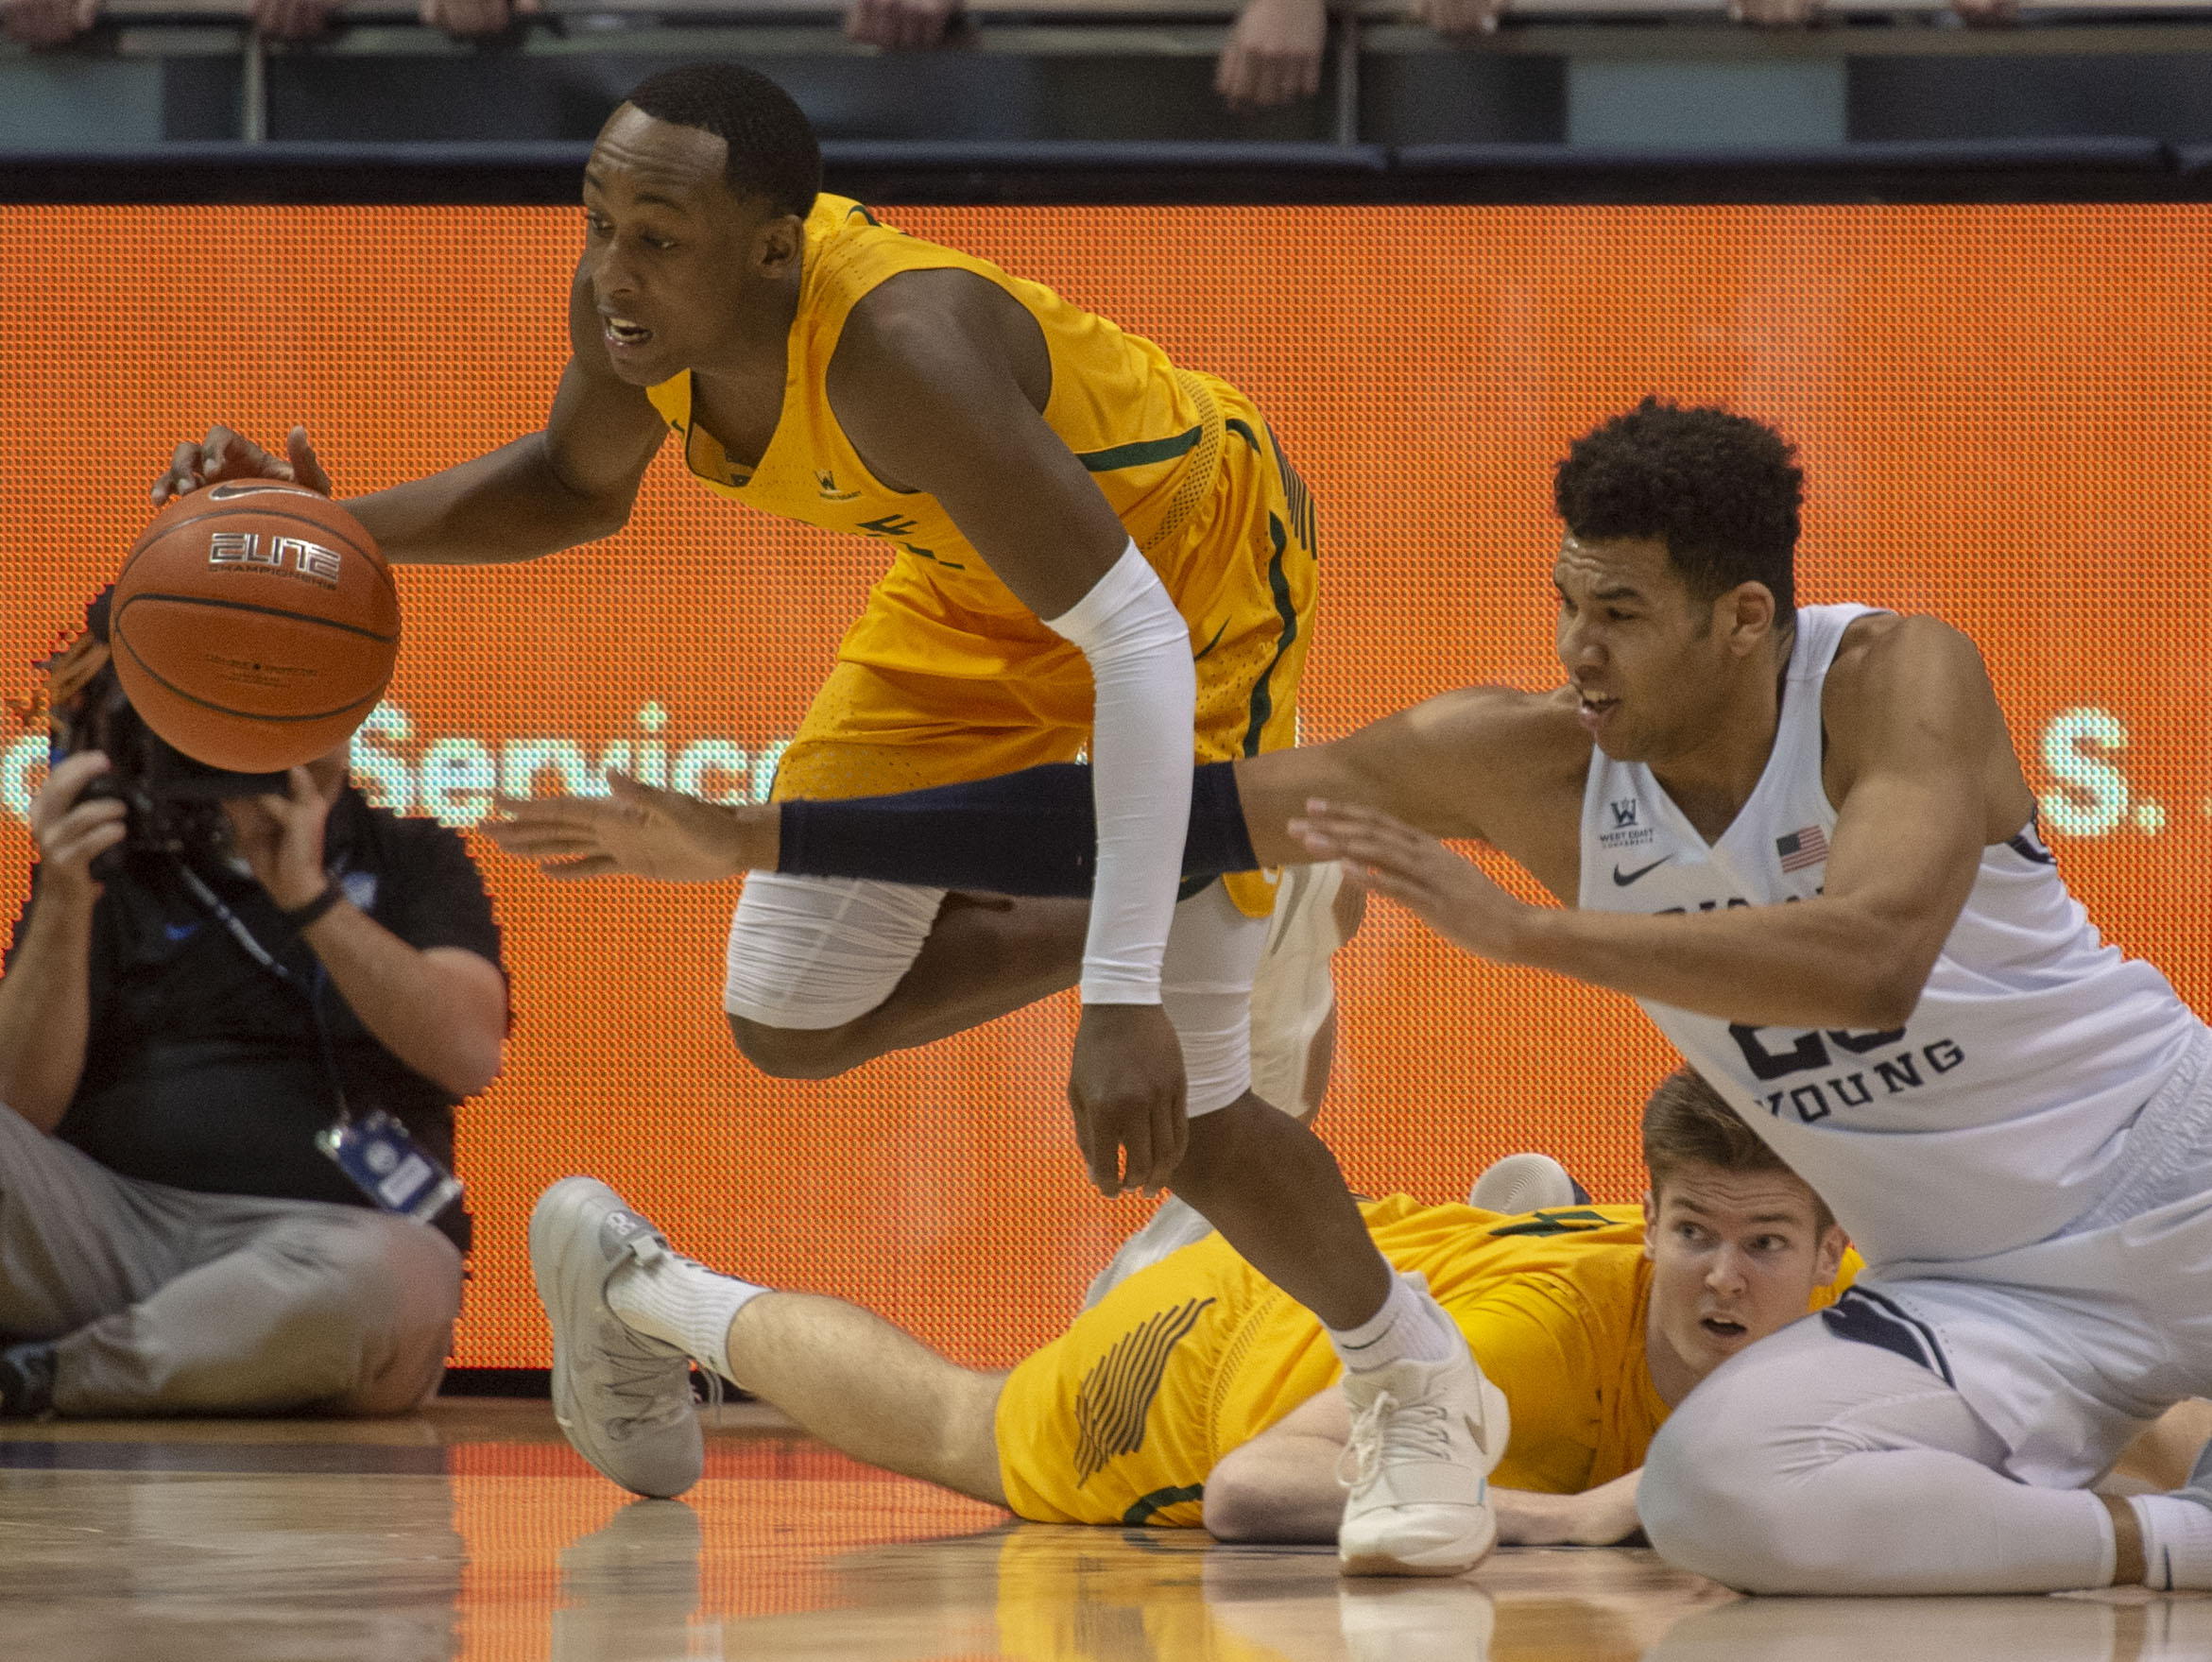 (Rick Egan  |  The Salt Lake Tribune)  Brigham Young Cougars forward Yoeli Childs (23) goes for a loose ball along with San Francisco Dons guard Jamaree Bouyea (1), in WCC basketball action at the Marriott Center, Thursday, February 21, 2018.